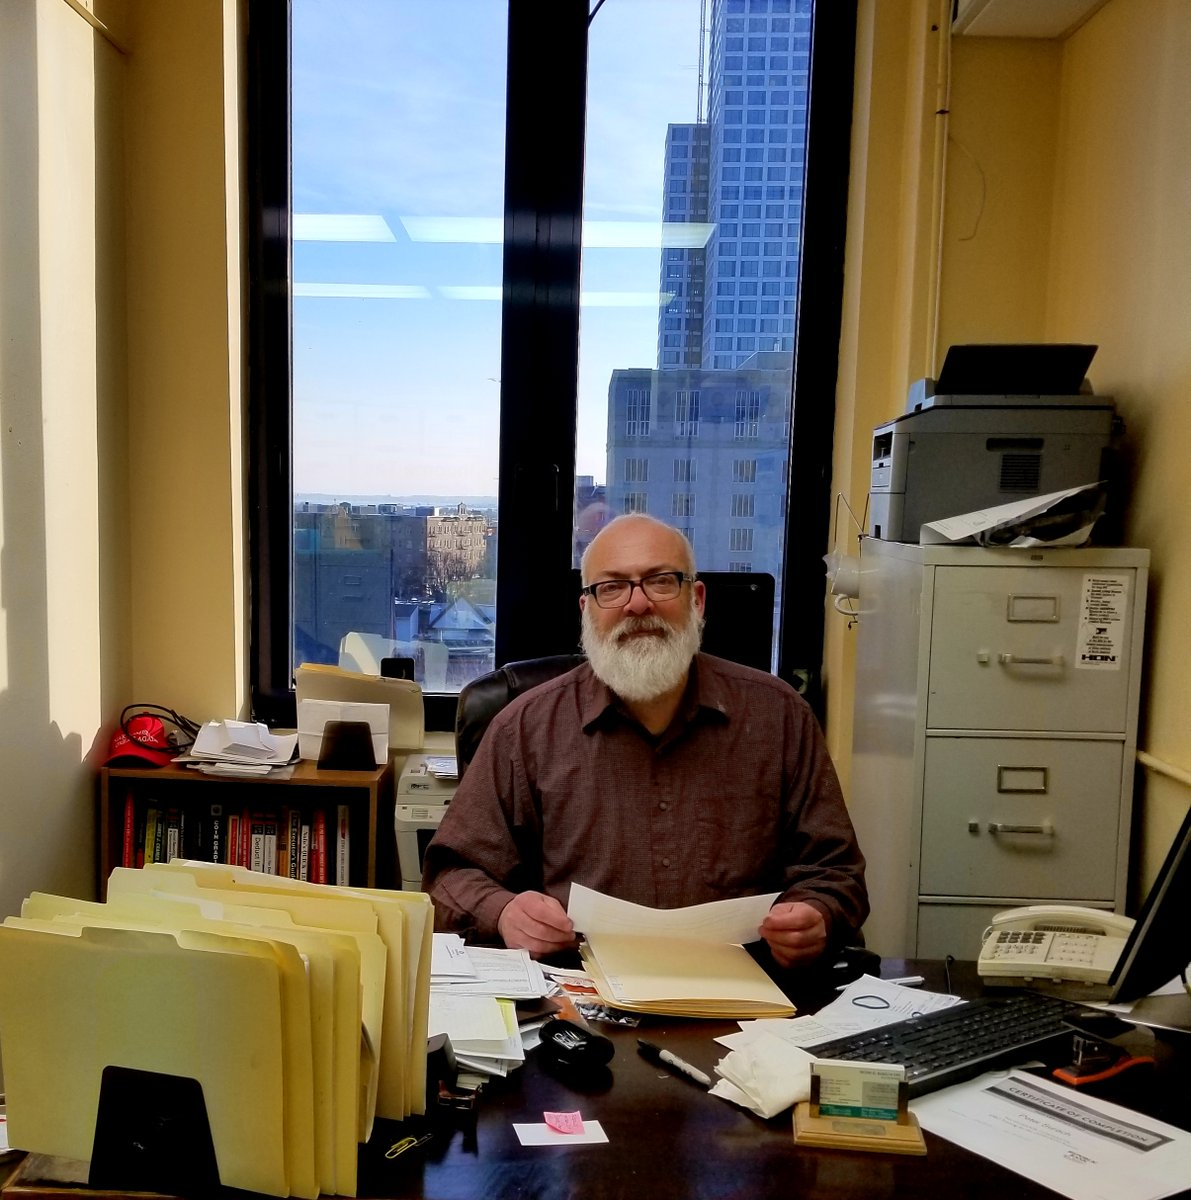 Tax season is here! Get your taxes done by Peter G. Surach, whose office is located 591 Summit Ave, Suite #615 (formerly 665 Newark Ave)! 20 years of experience. Call for details: 201-432-5400.Tax season hours:Mon-Fri 10AM-8PMSat 10AM-5PM#jerseycity #TaxSeason #taxes